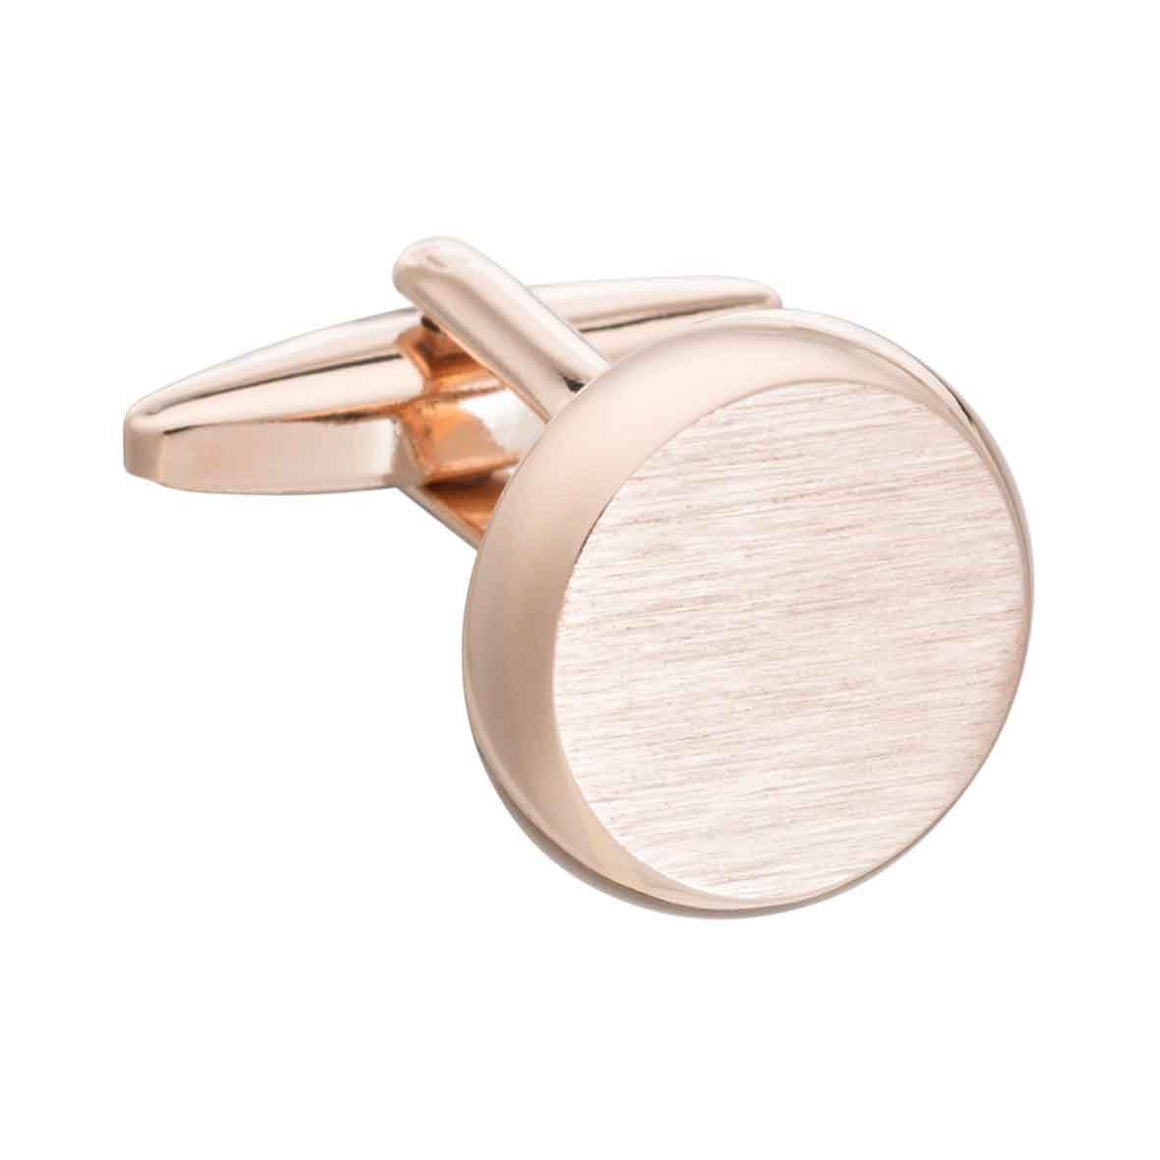 Rose Gold Smooth 'O' Brushed Finish Round Cufflinks by Elizabeth Parker